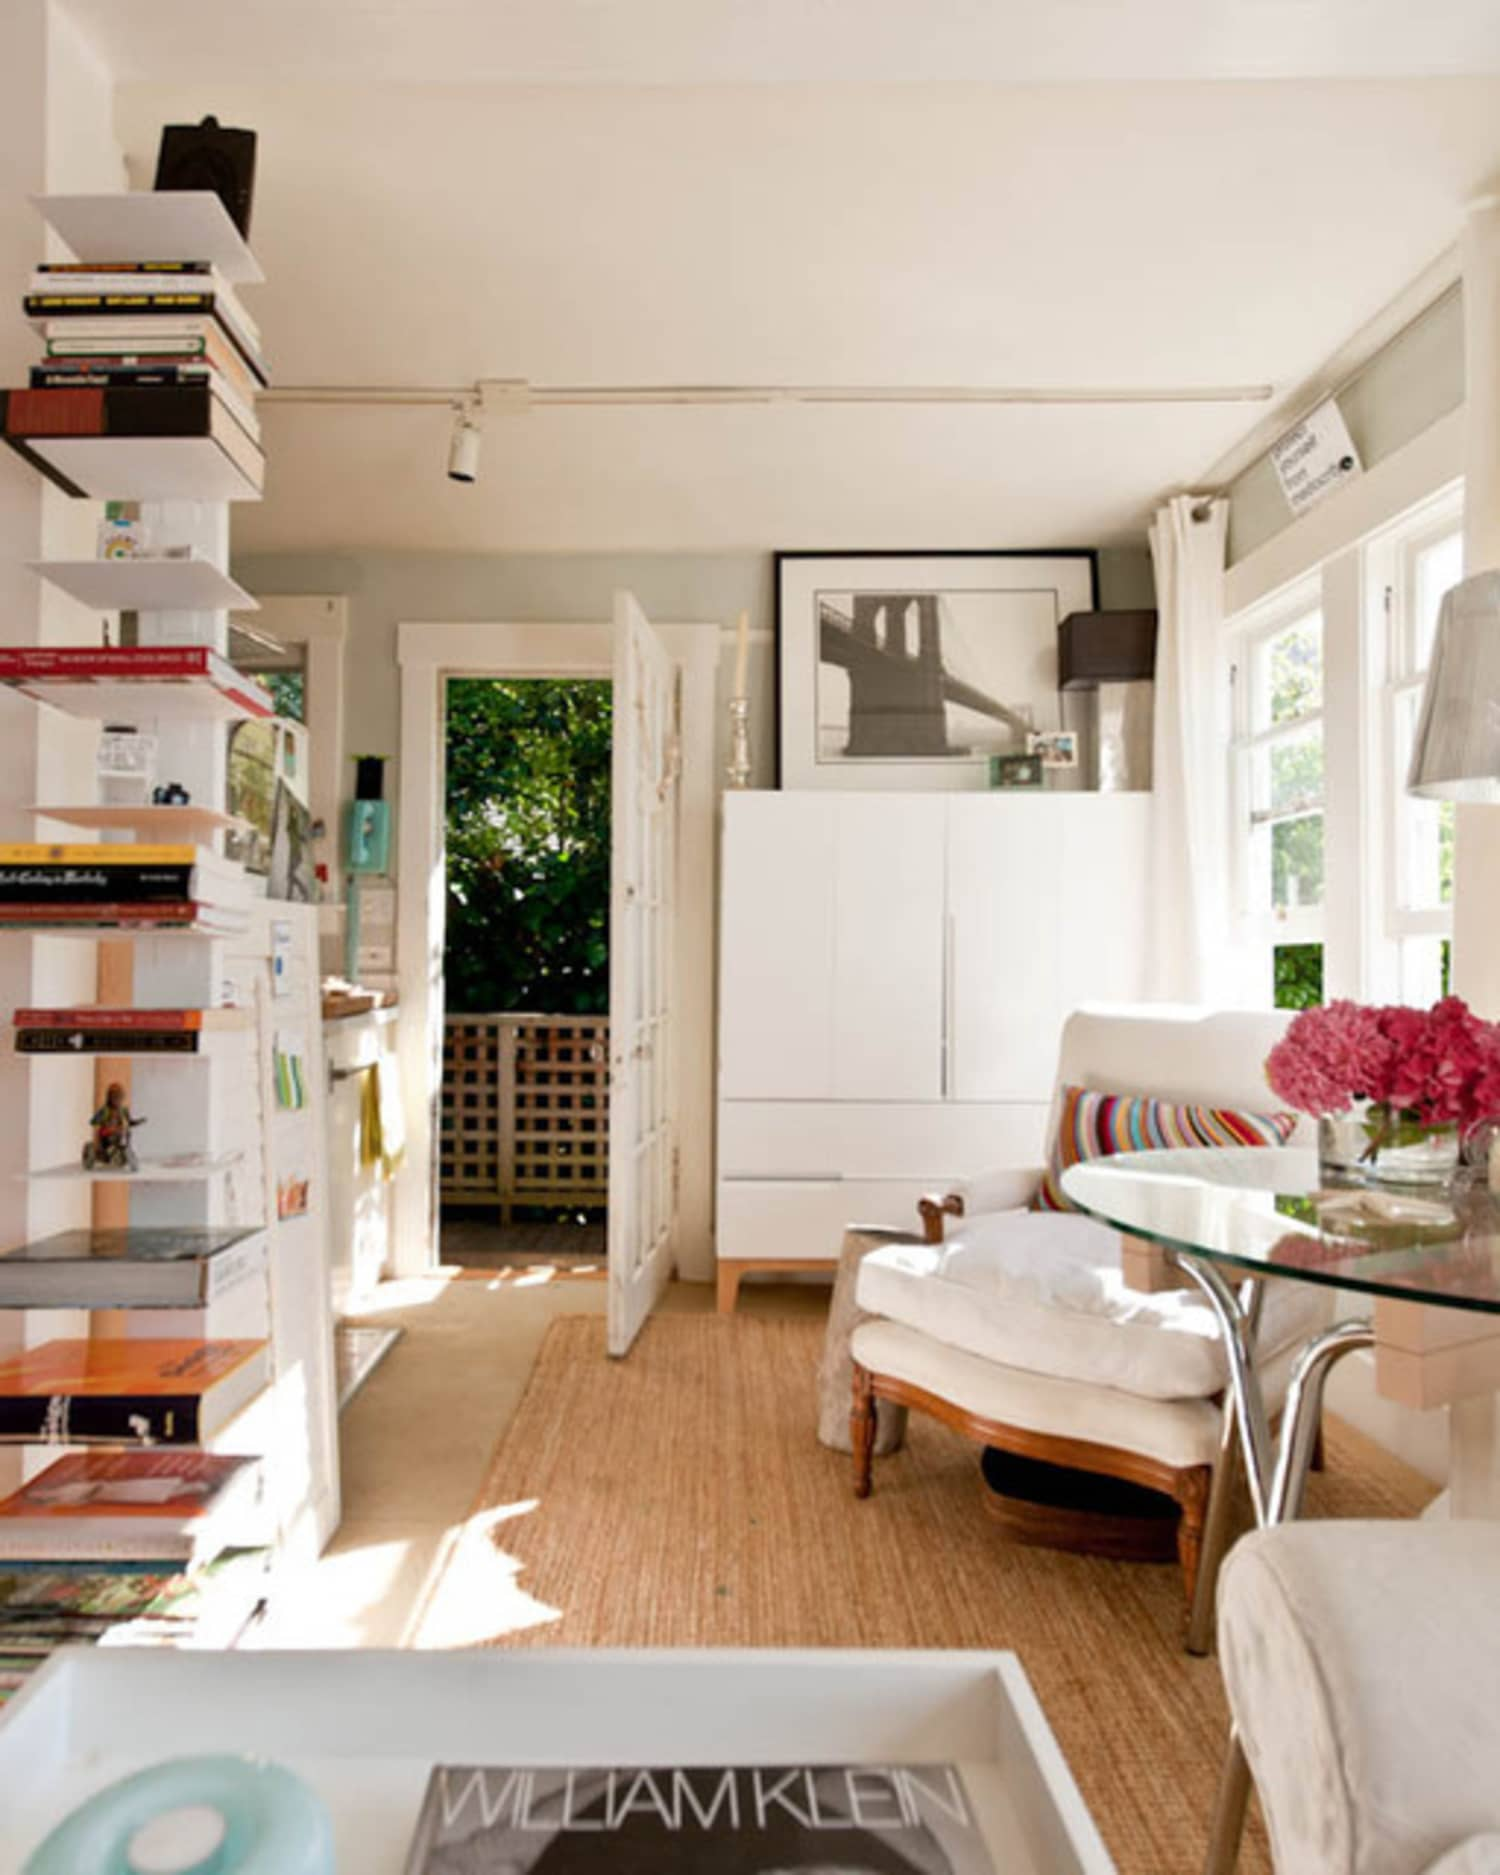 Small Living Room Apartment Therapy: Small Space Storage: 8 Ways To Go Vertical